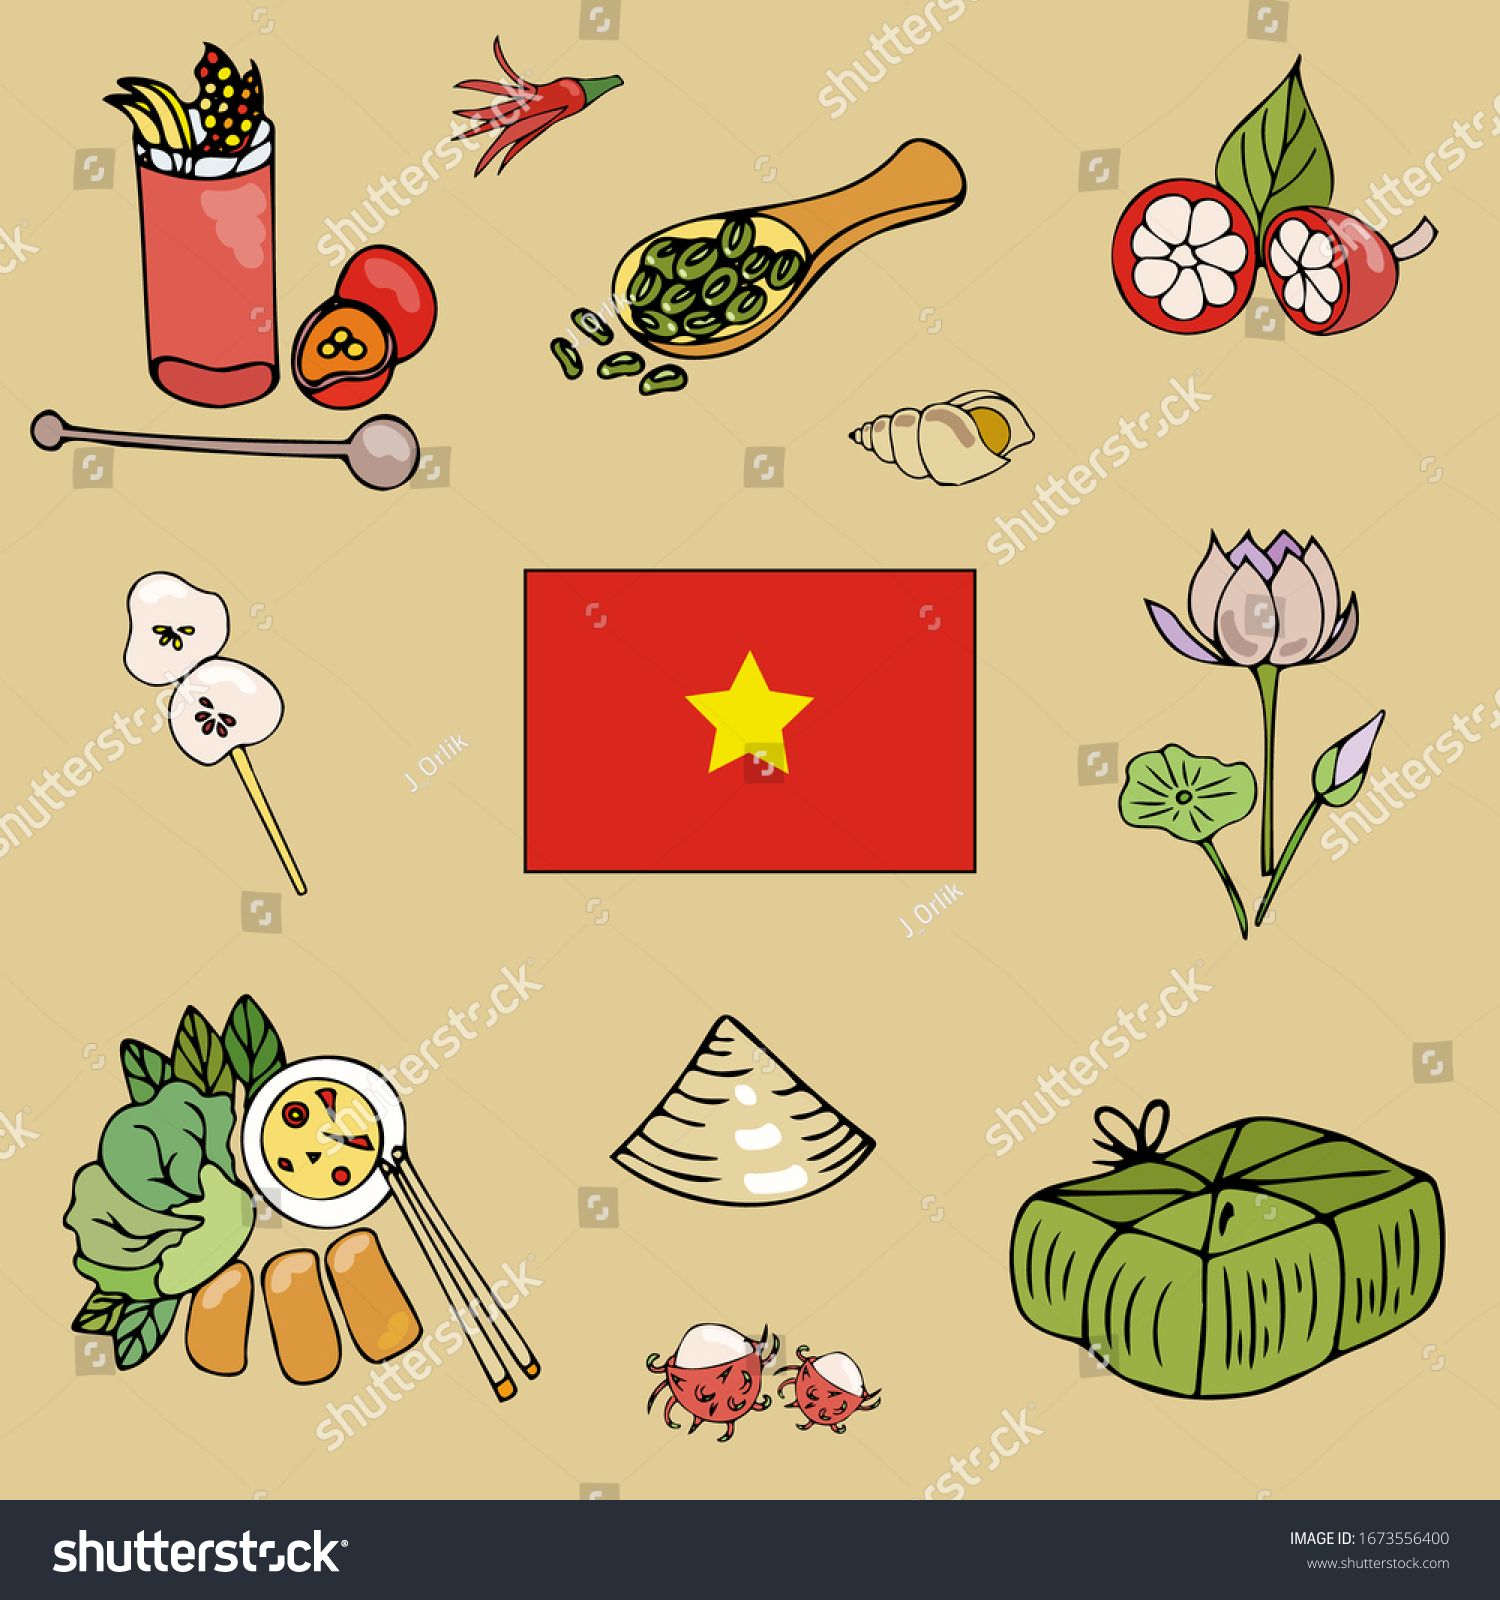 Pretty Icons Connected Vietnam Culture Traditions Stock Vector Royalty Free 1673556400